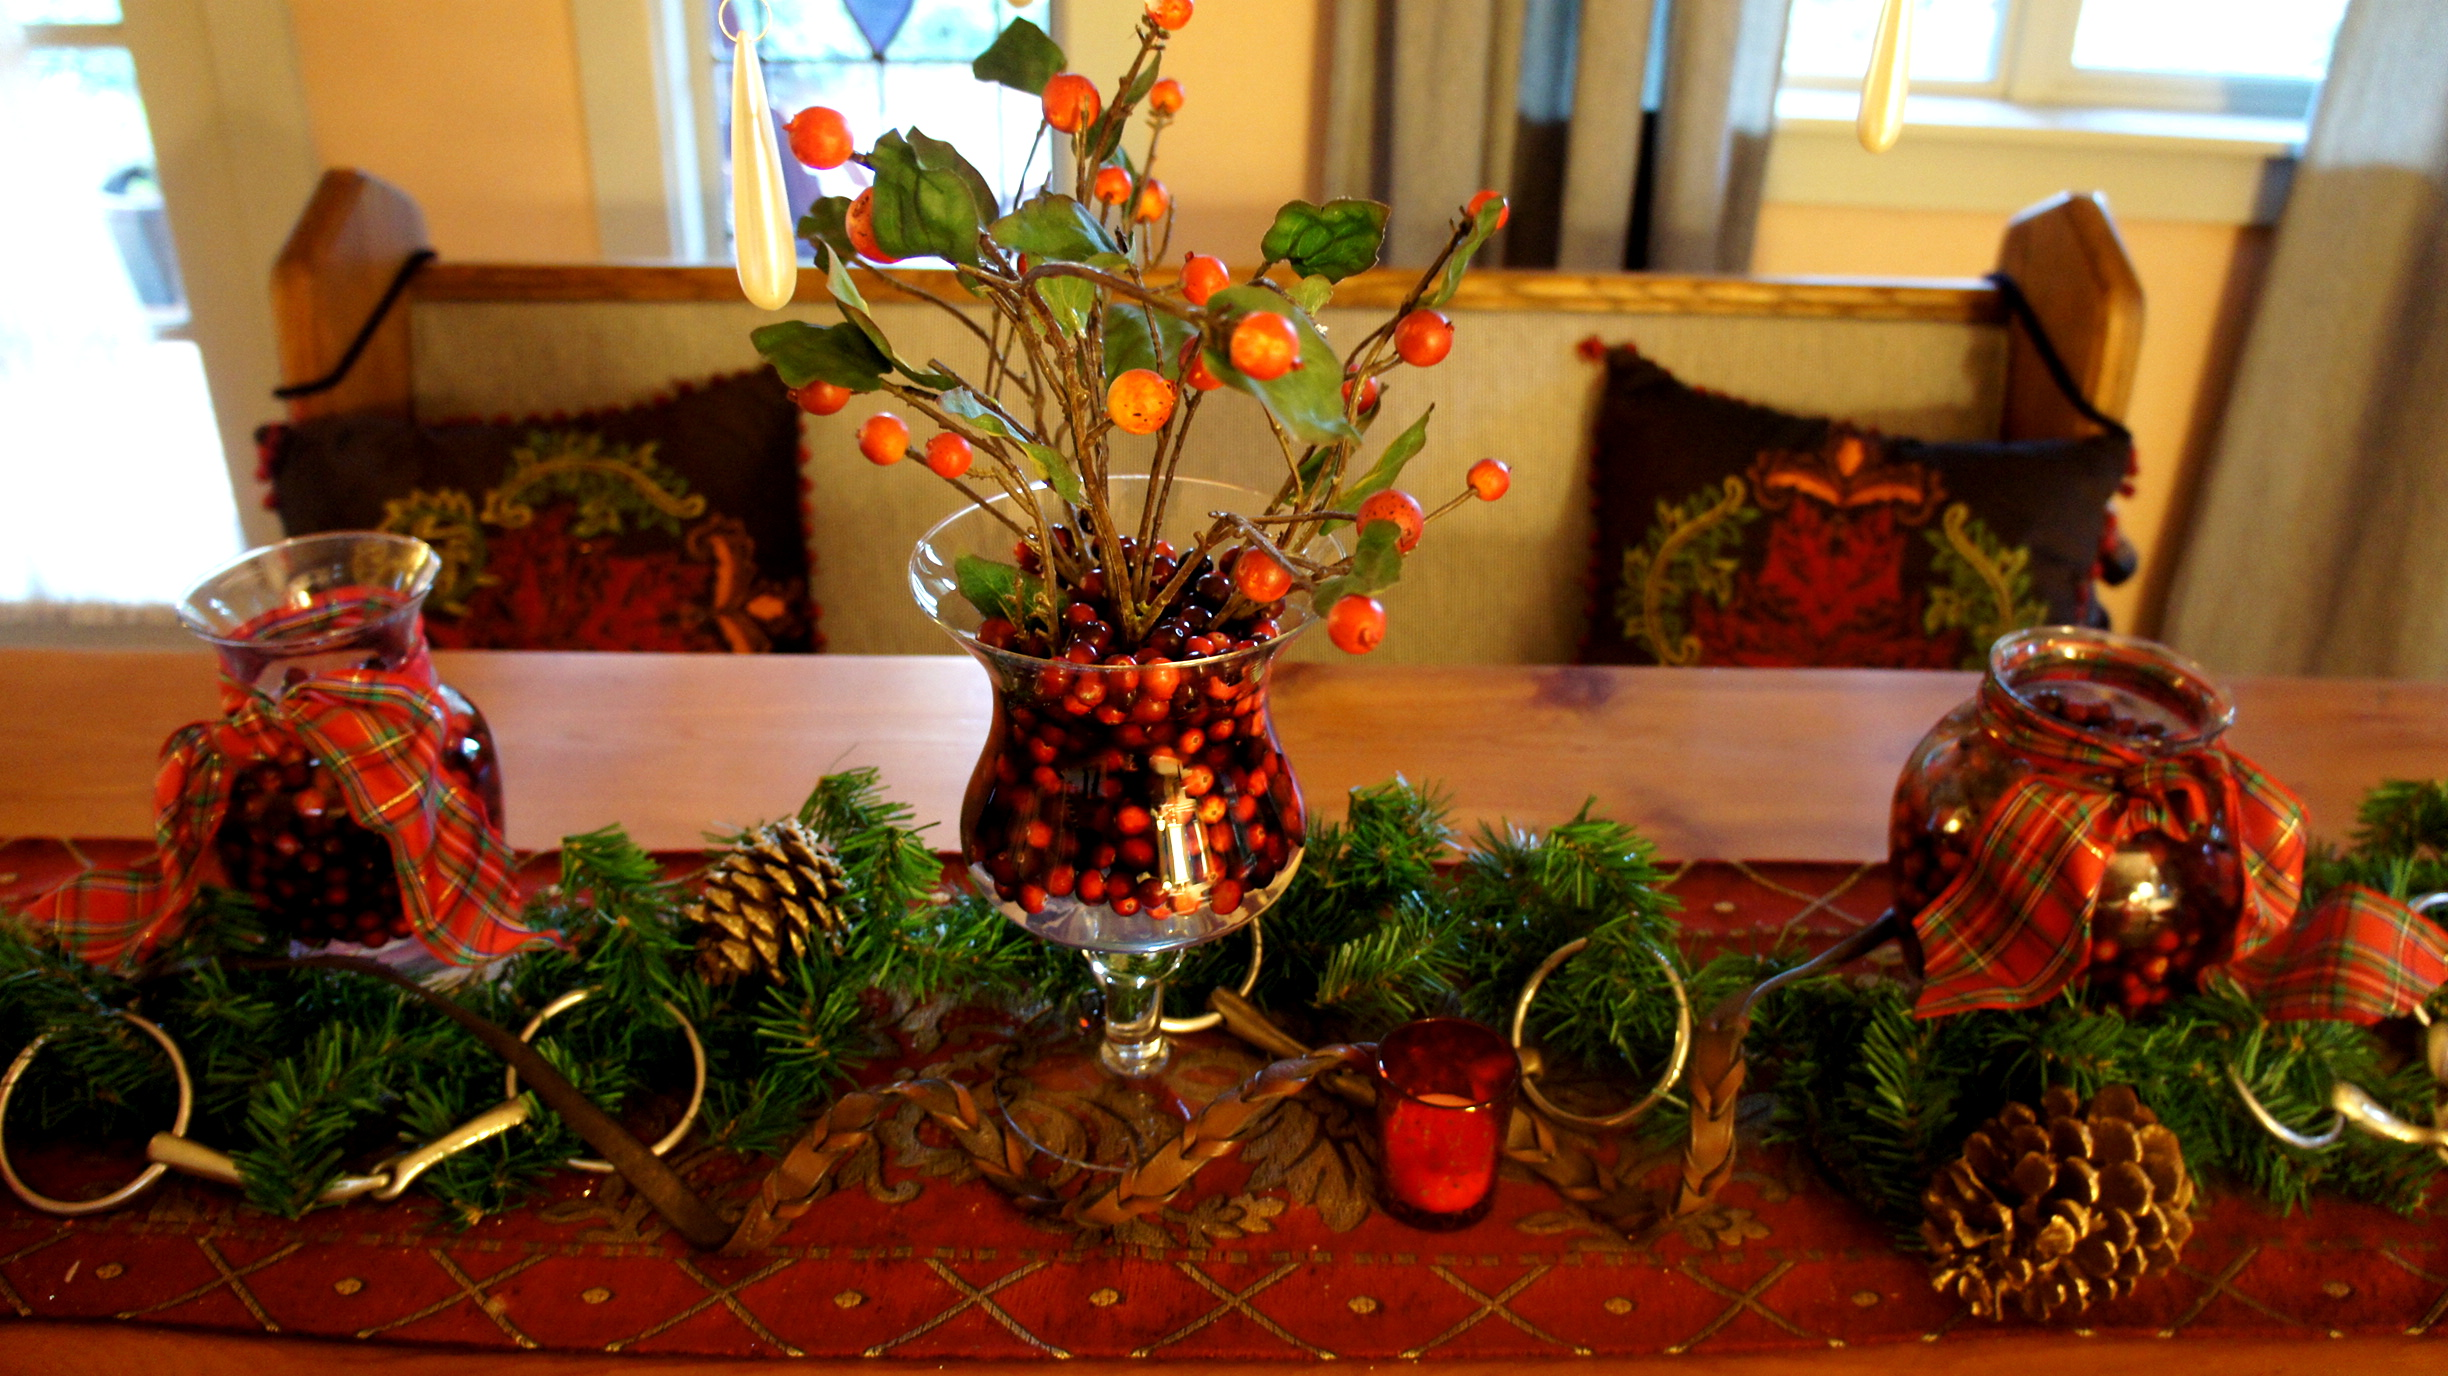 Equestrian holiday d cor inspiration equestrian stylist for Horse decorations for home